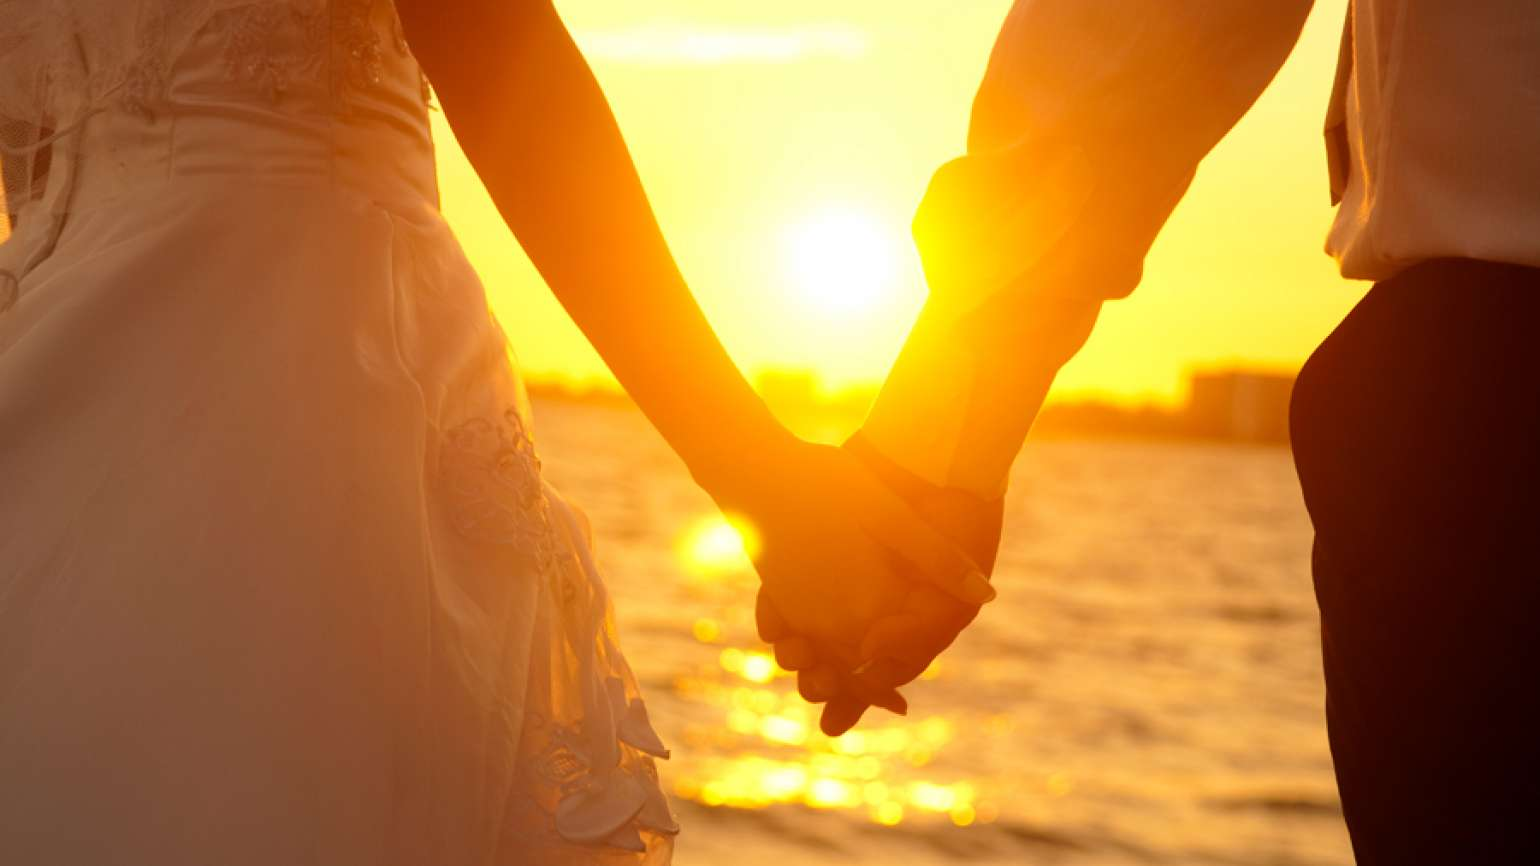 Newlyweds hold hands on a sun-splashed beach.